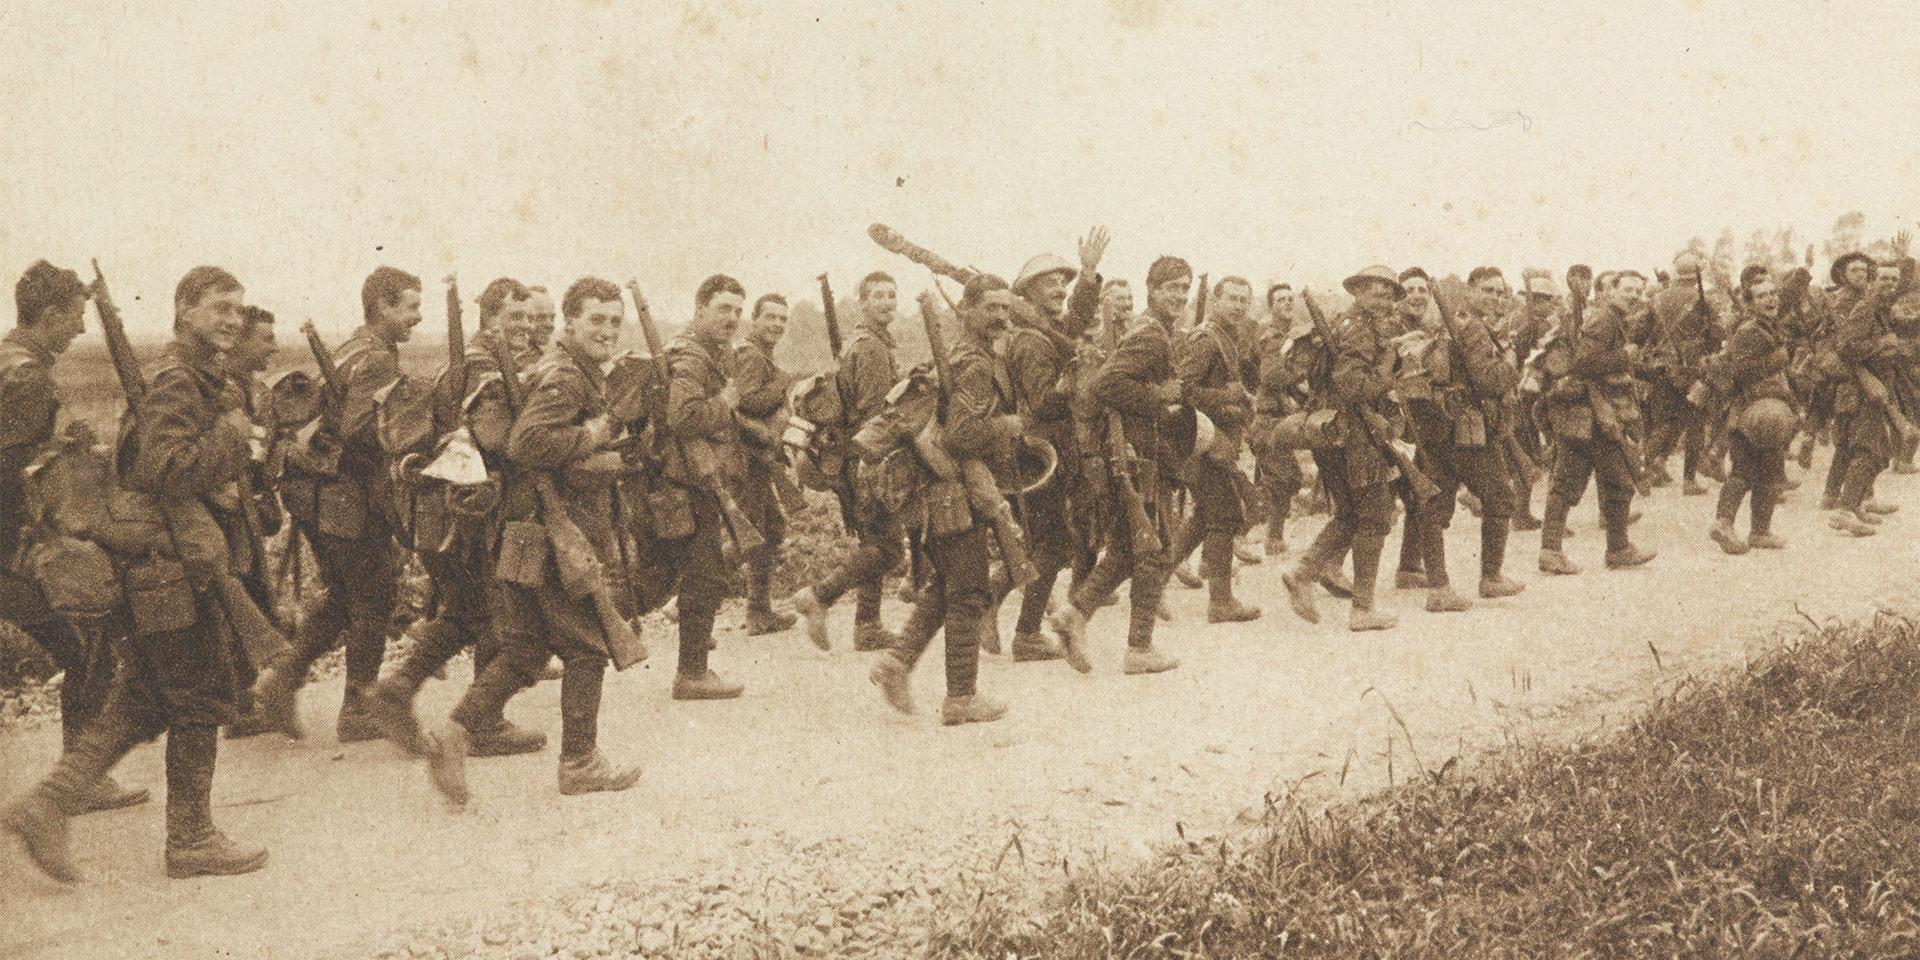 'The East Yorks going into the trenches', 3 July 1916